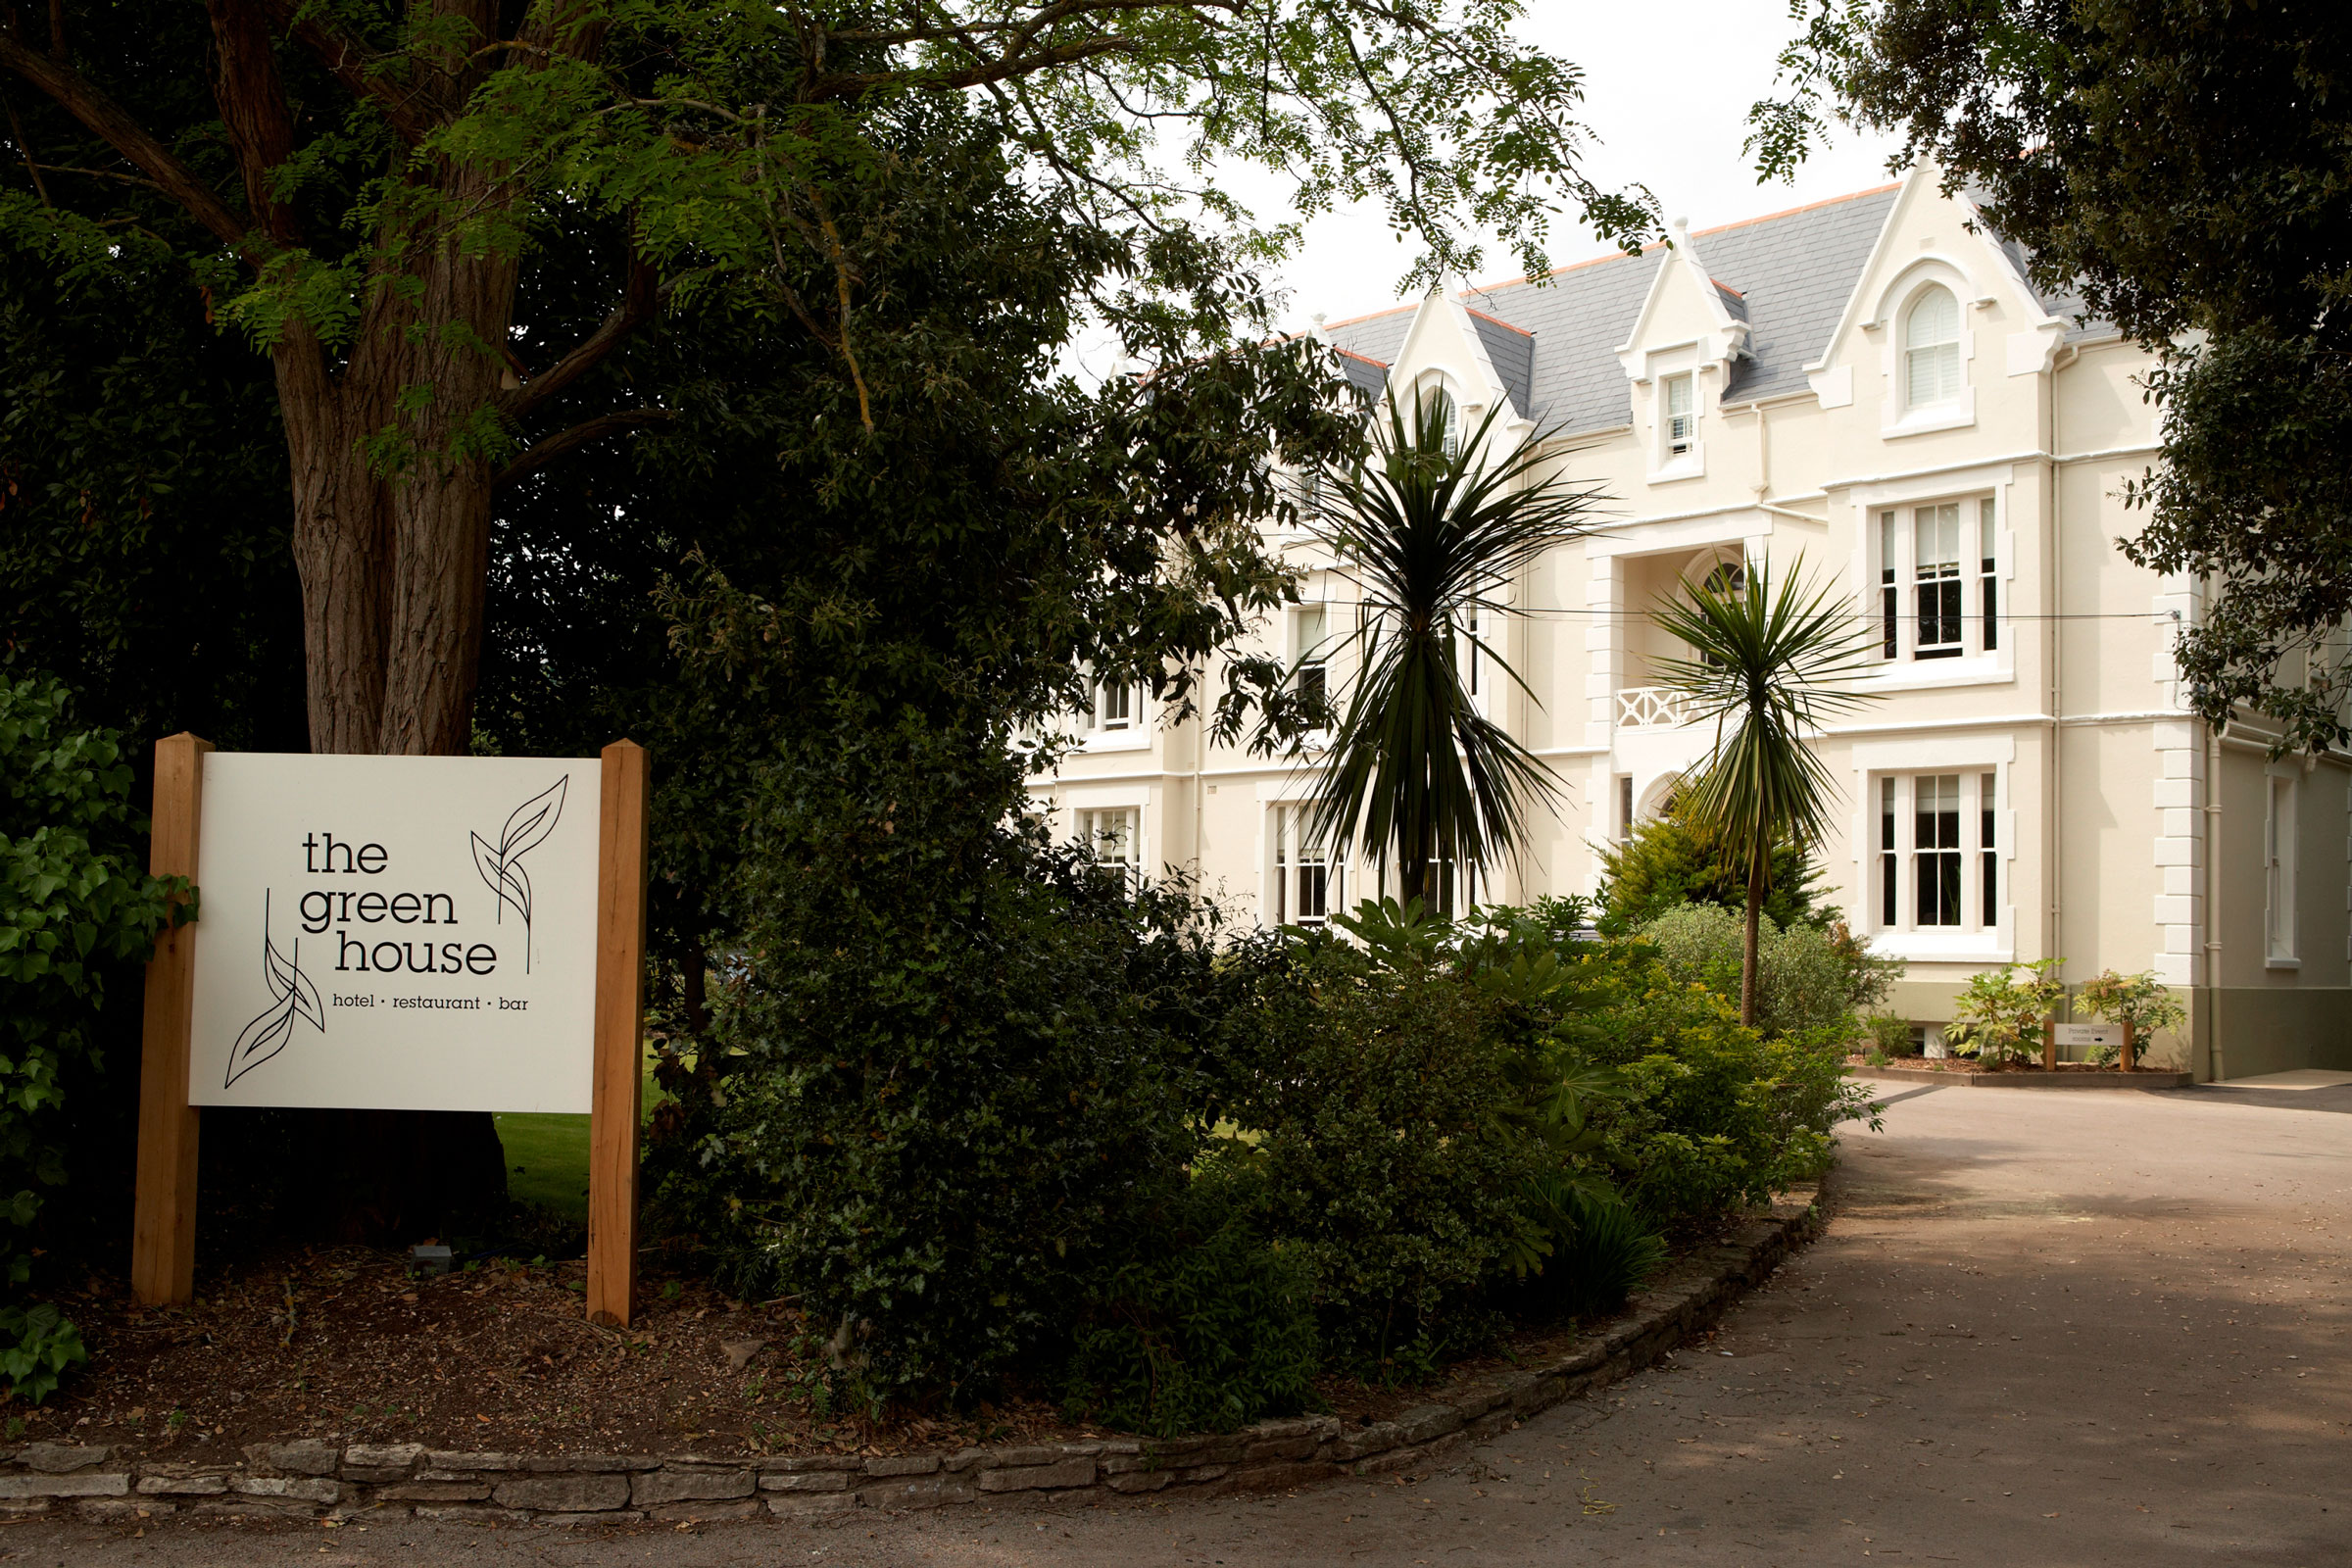 1_THE_GREEN_HOUSE__BOURNEMOUTH.jpg?1555438634